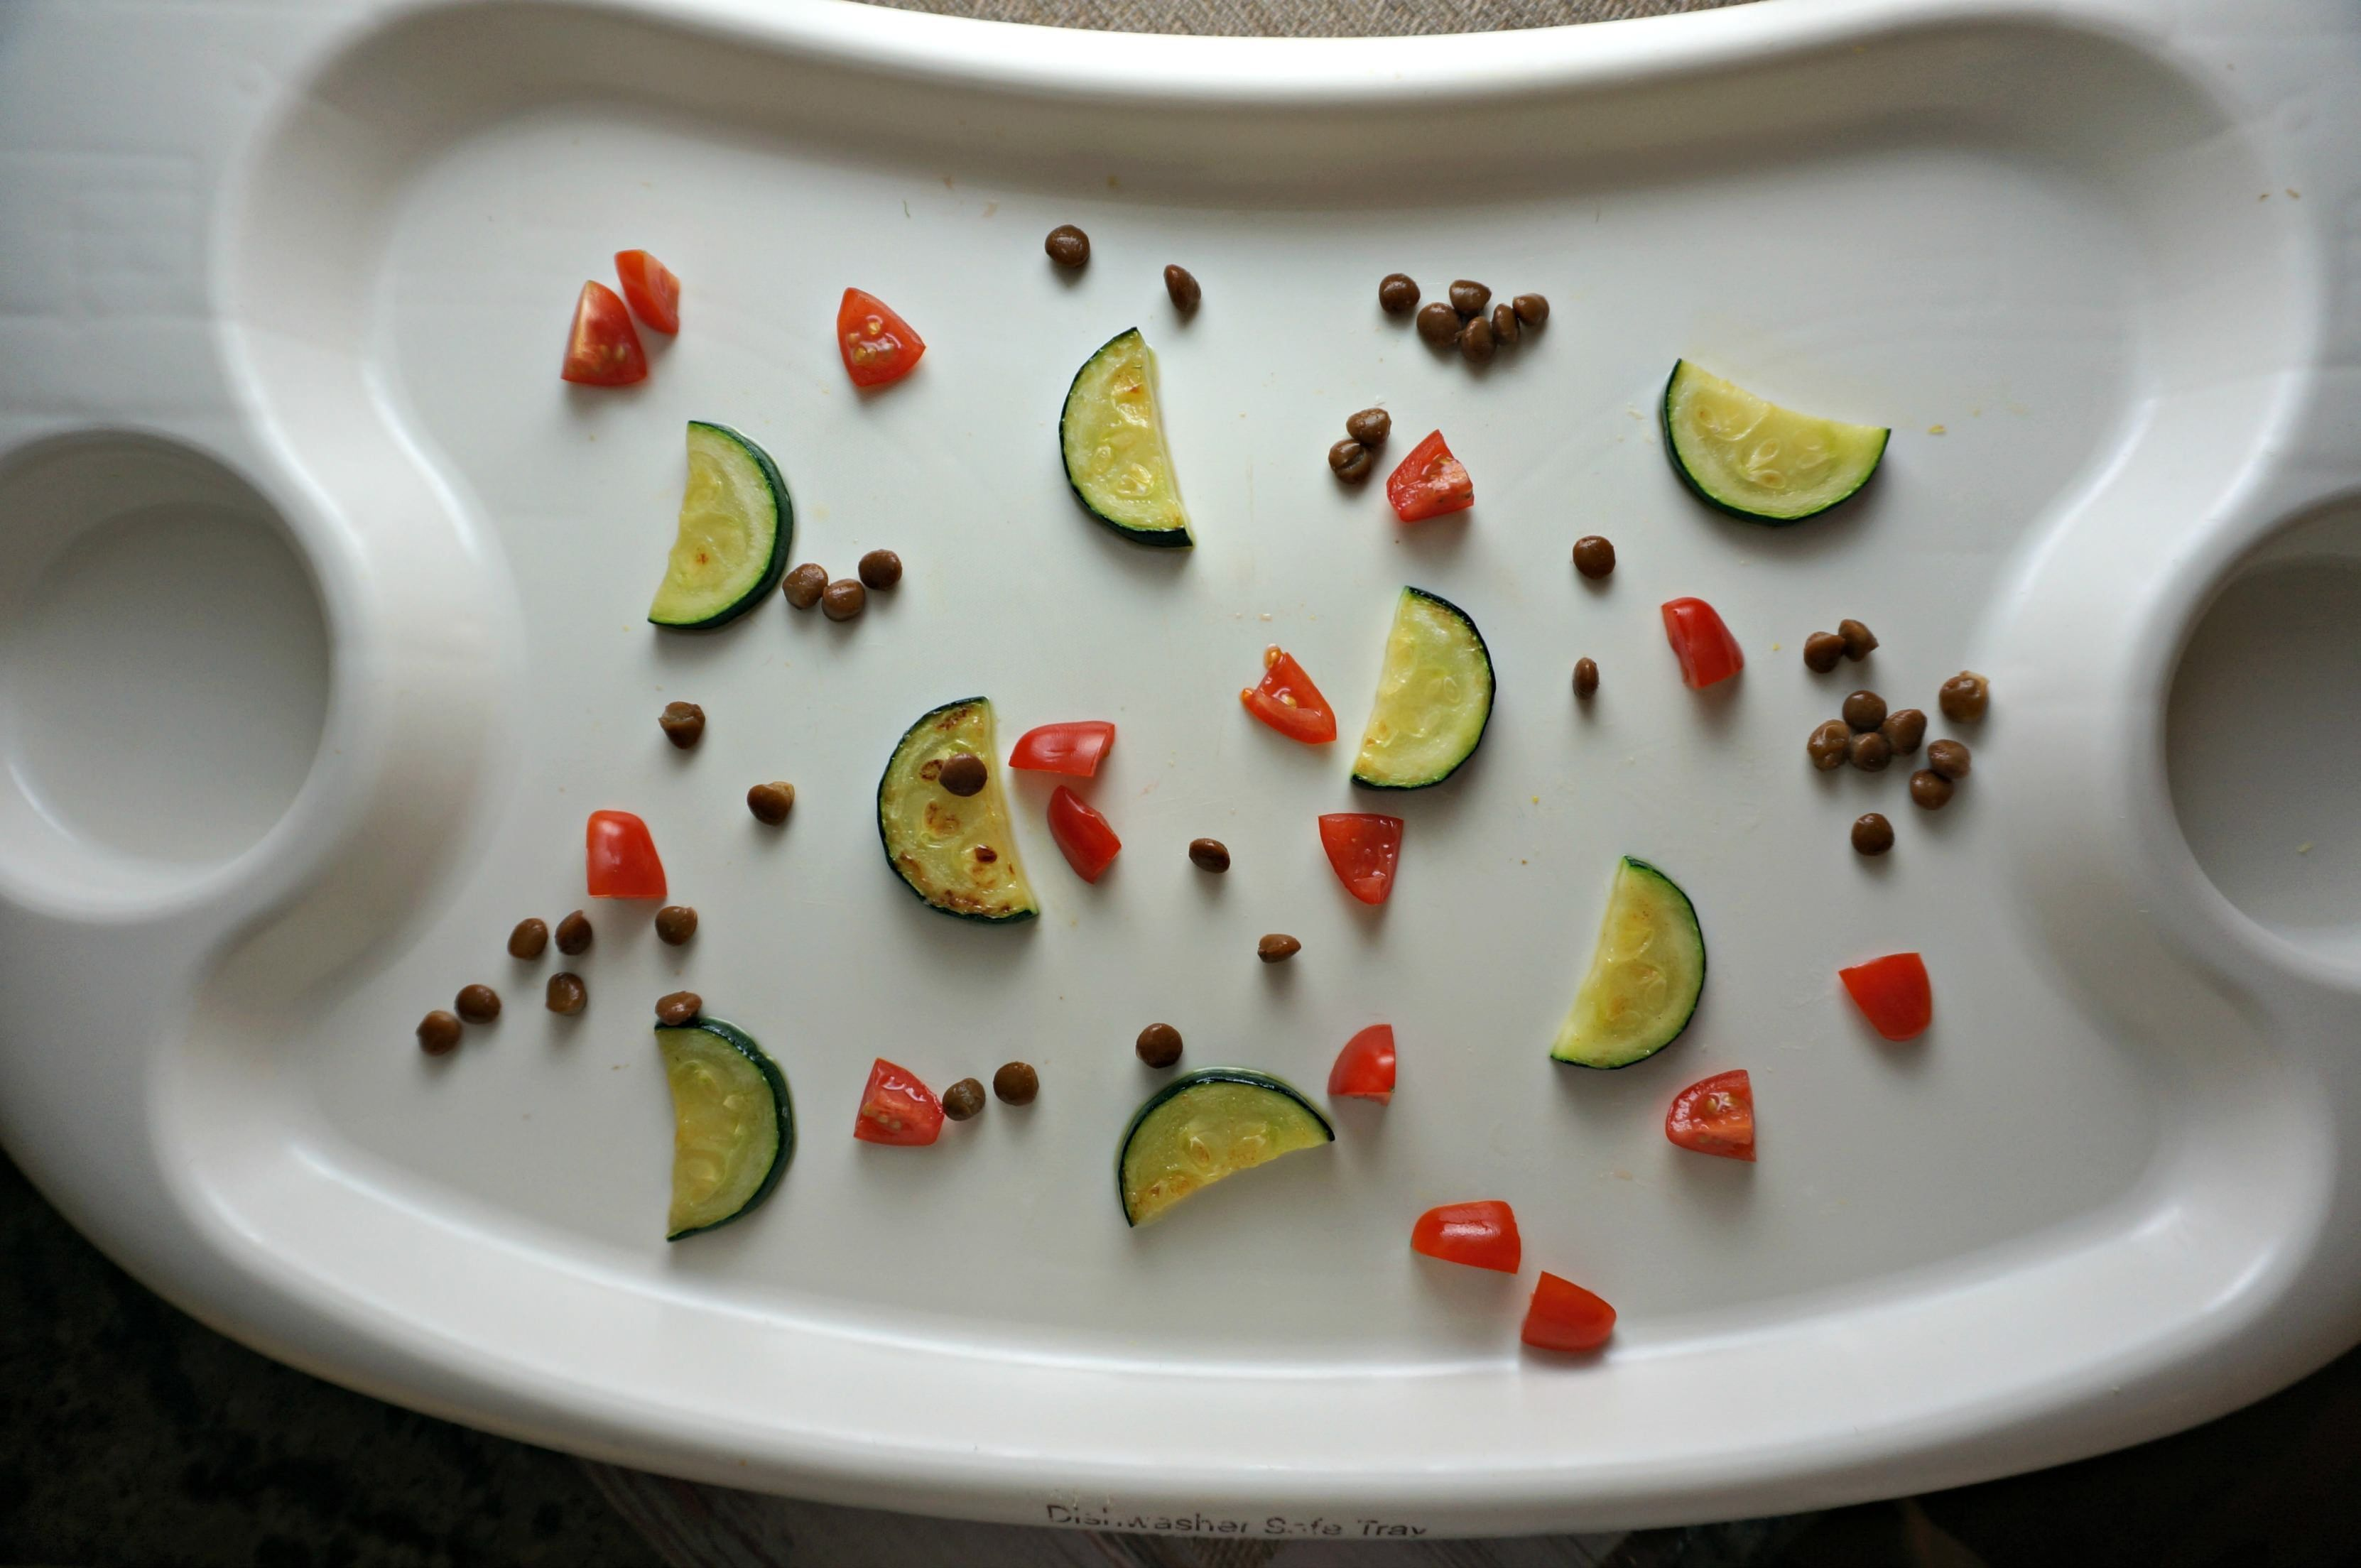 Baby Led Weaning Meal Ideas 8 Months Old